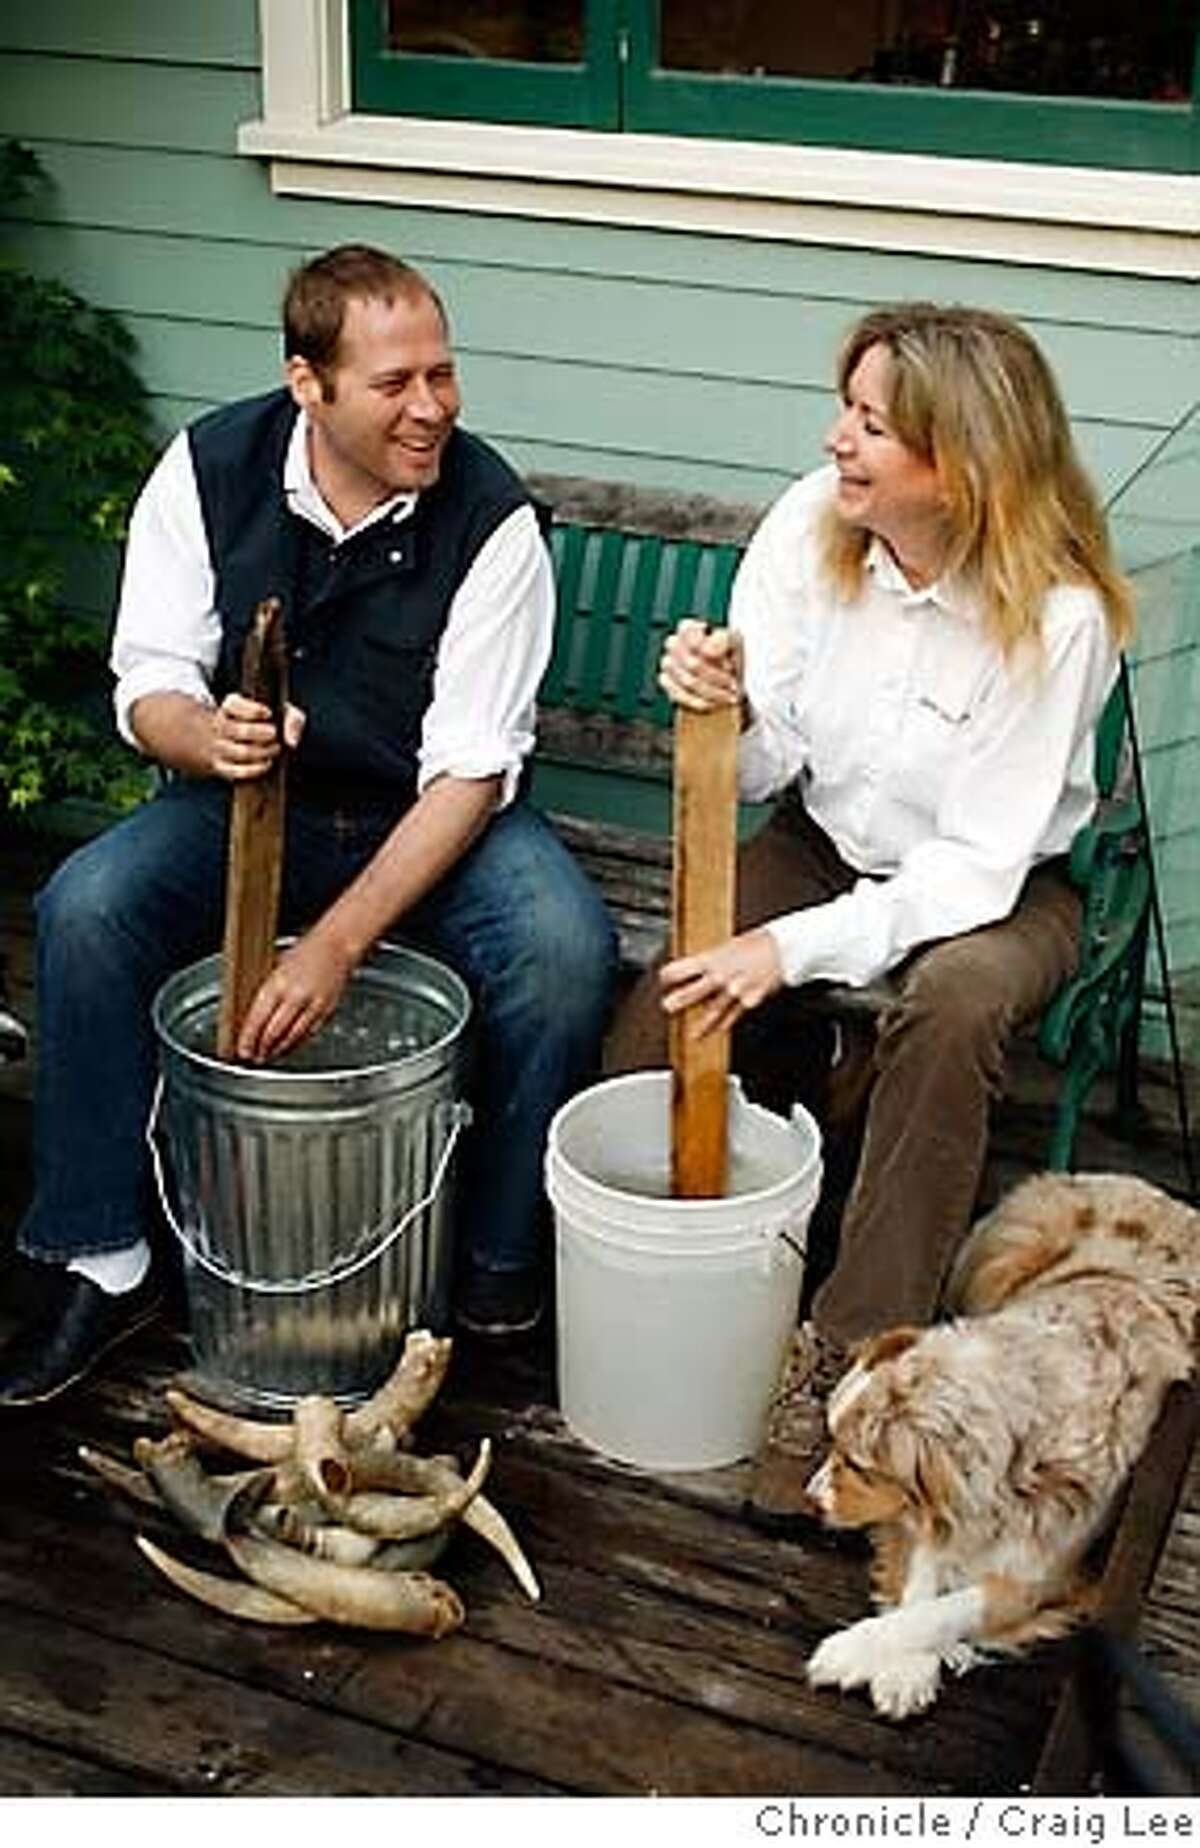 BIODYNAMIC16_046_cl.JPG Story on chefs who have their own biodynamic farms to supply their restaurant. This is David Kinch, chef at Manresa in Los Gatos. David and his farmer, Cynthia Sandberg of Love Apple Farm in Ben Lomond, apply a biodynamic preparation to the crops. Photo of Cynthia Sandberg (right) and David Kinch (left) stirring rain water captured in buckets to make the biodynamic preparation. Cynthia's dog, Indy, is on the right. Event on 4/27/07 in Ben Lomond. photo by Craig Lee / The Chronicle MANDATORY CREDIT FOR PHOTOG AND SF CHRONICLE/NO SALES-MAGS OUT